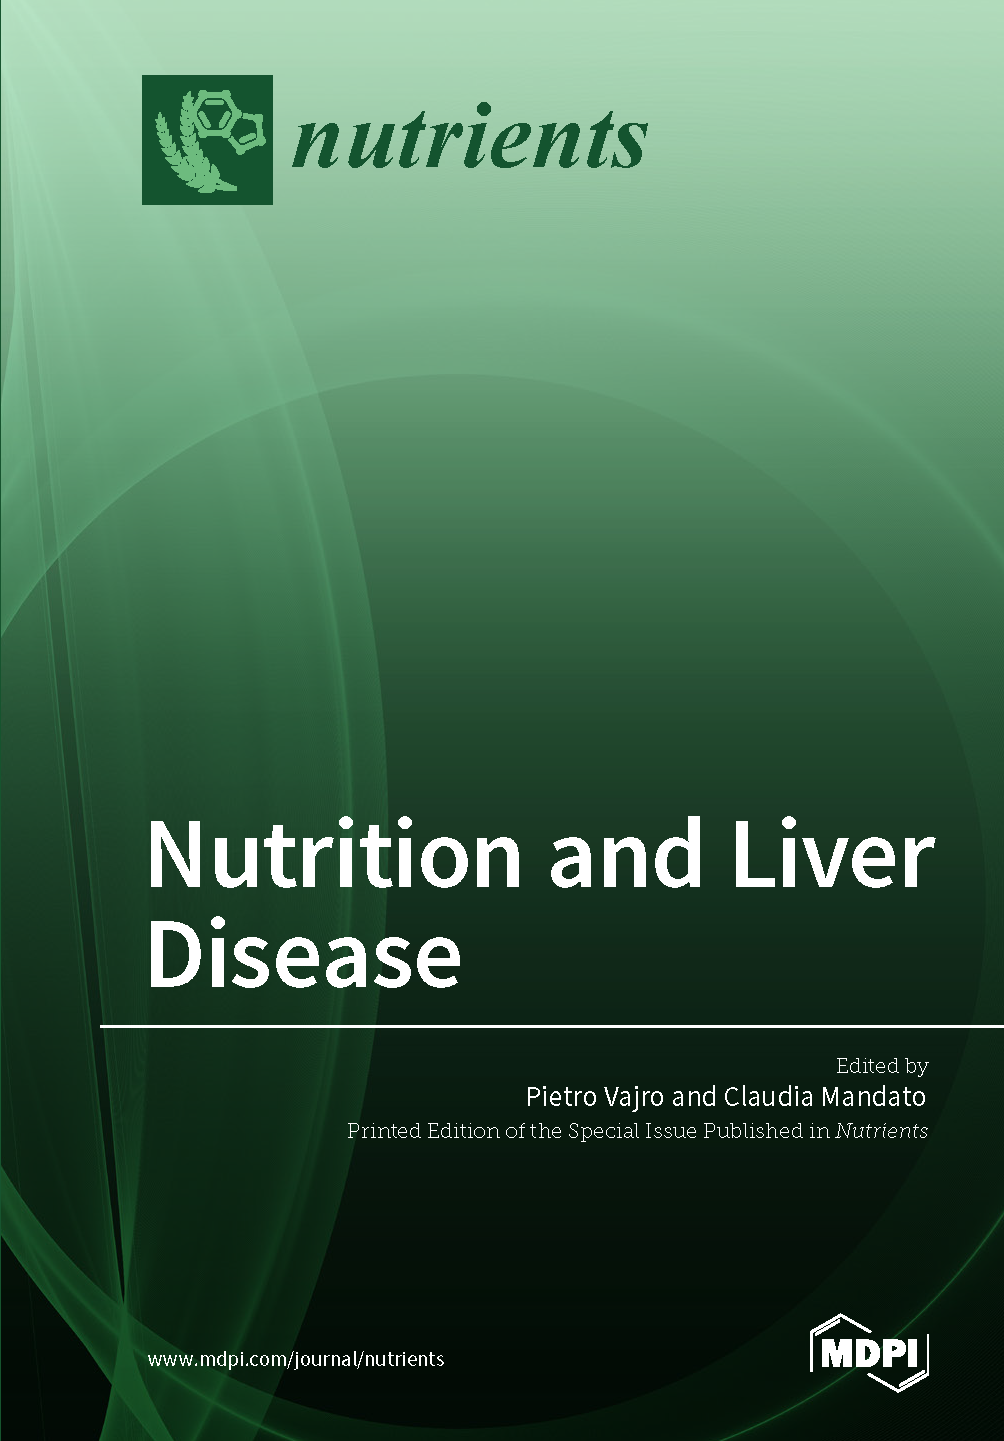 Nutrition and Liver Disease